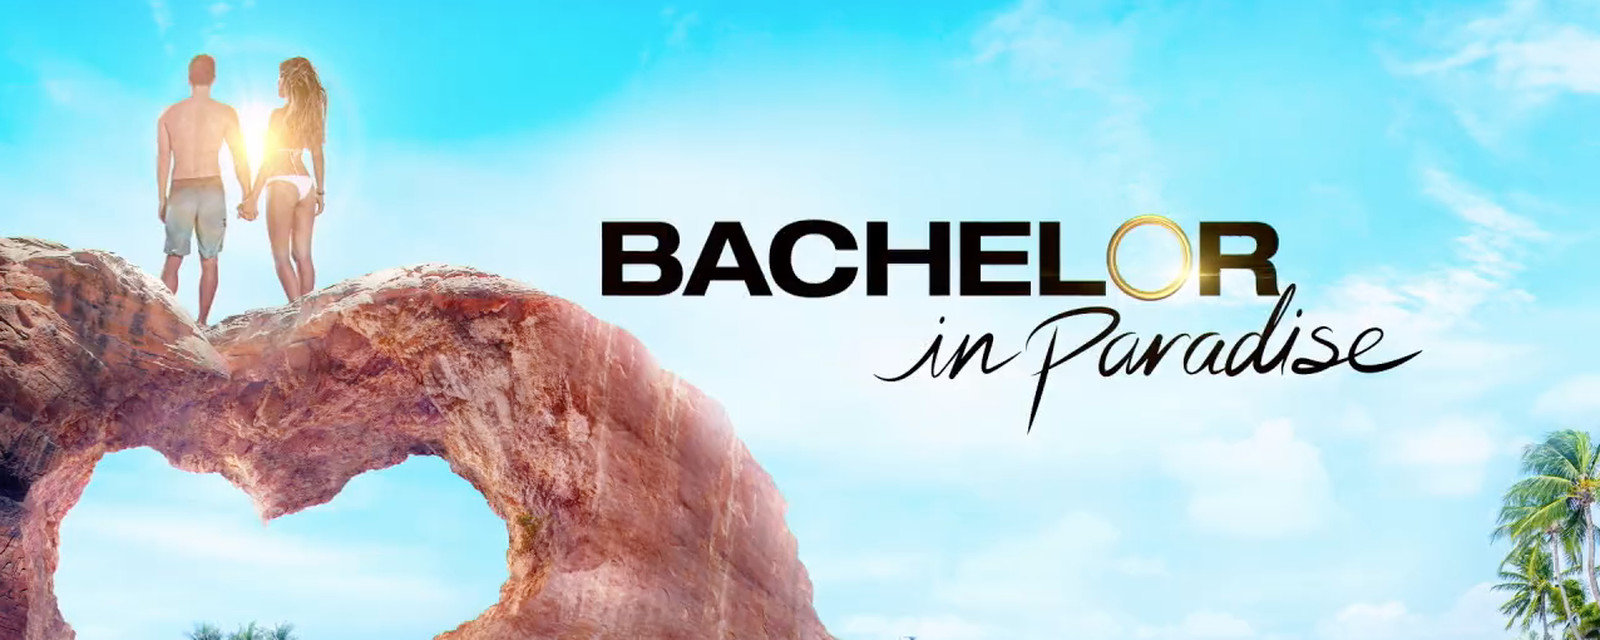 what time does bachelor in paradise come on